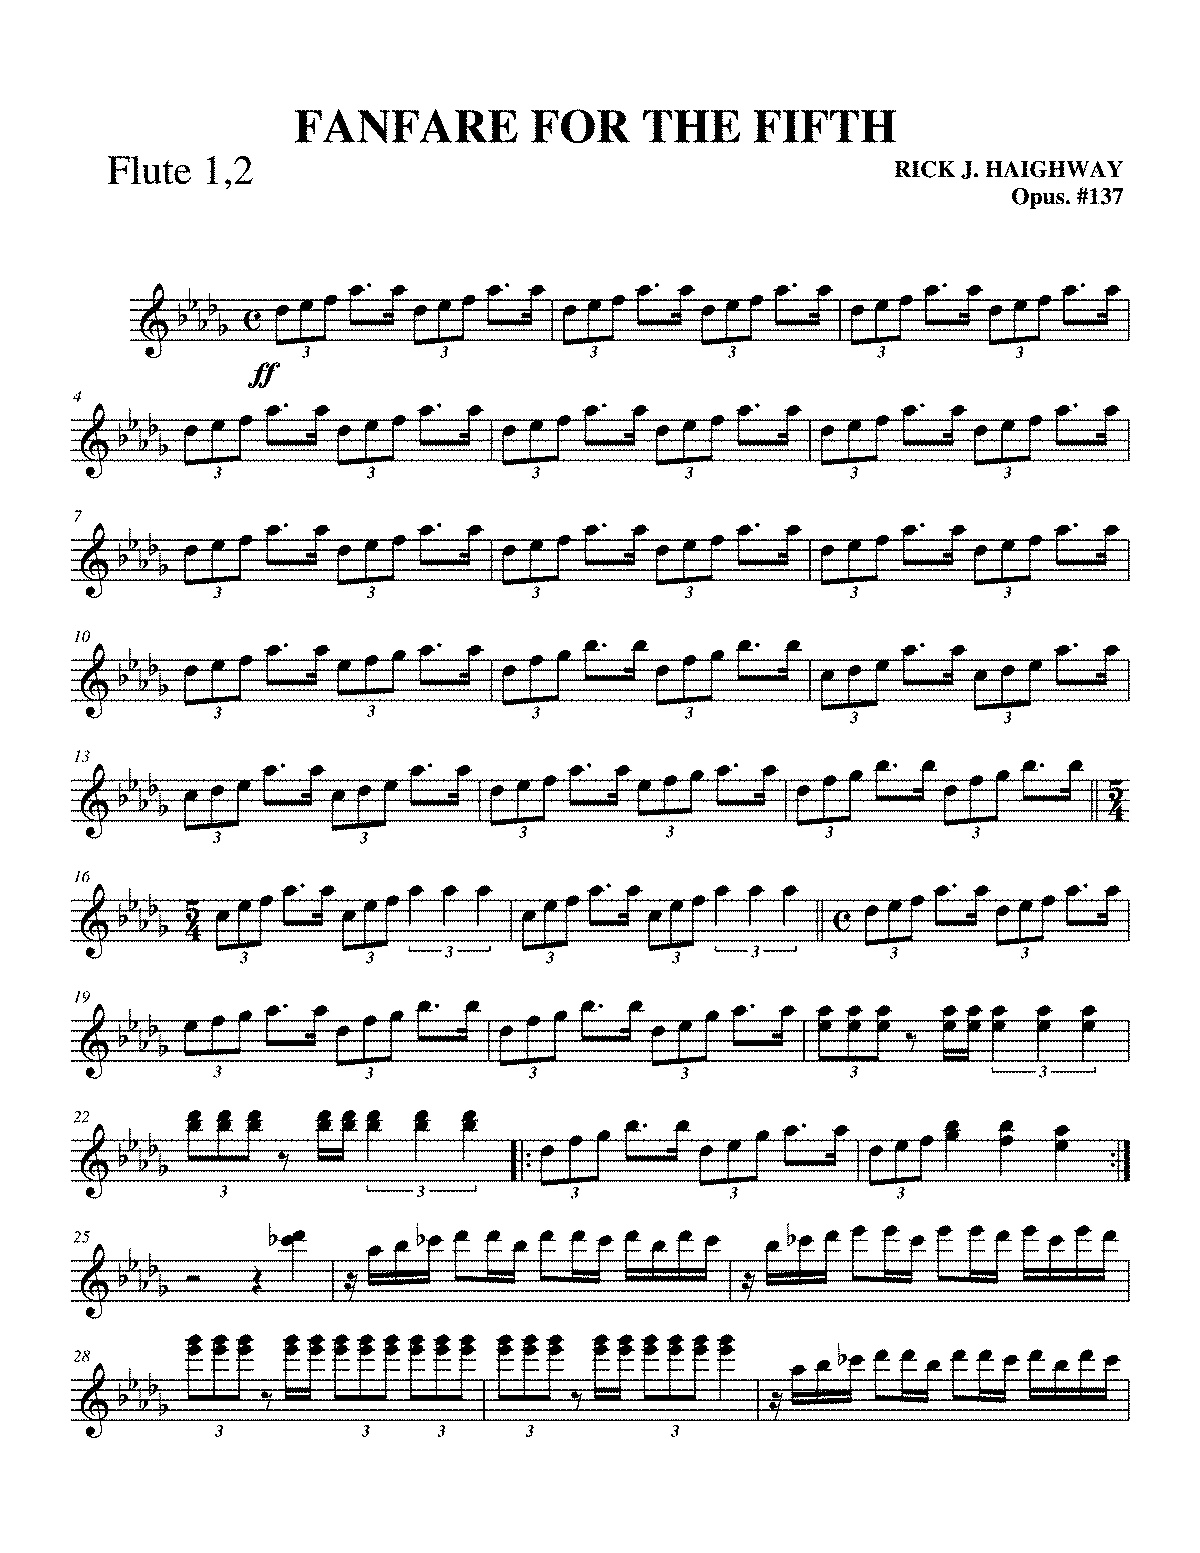 PMLP530589-Finale PrintMusic 2008 - -fANFARE FOR 5TH - 001 Flute.pdf